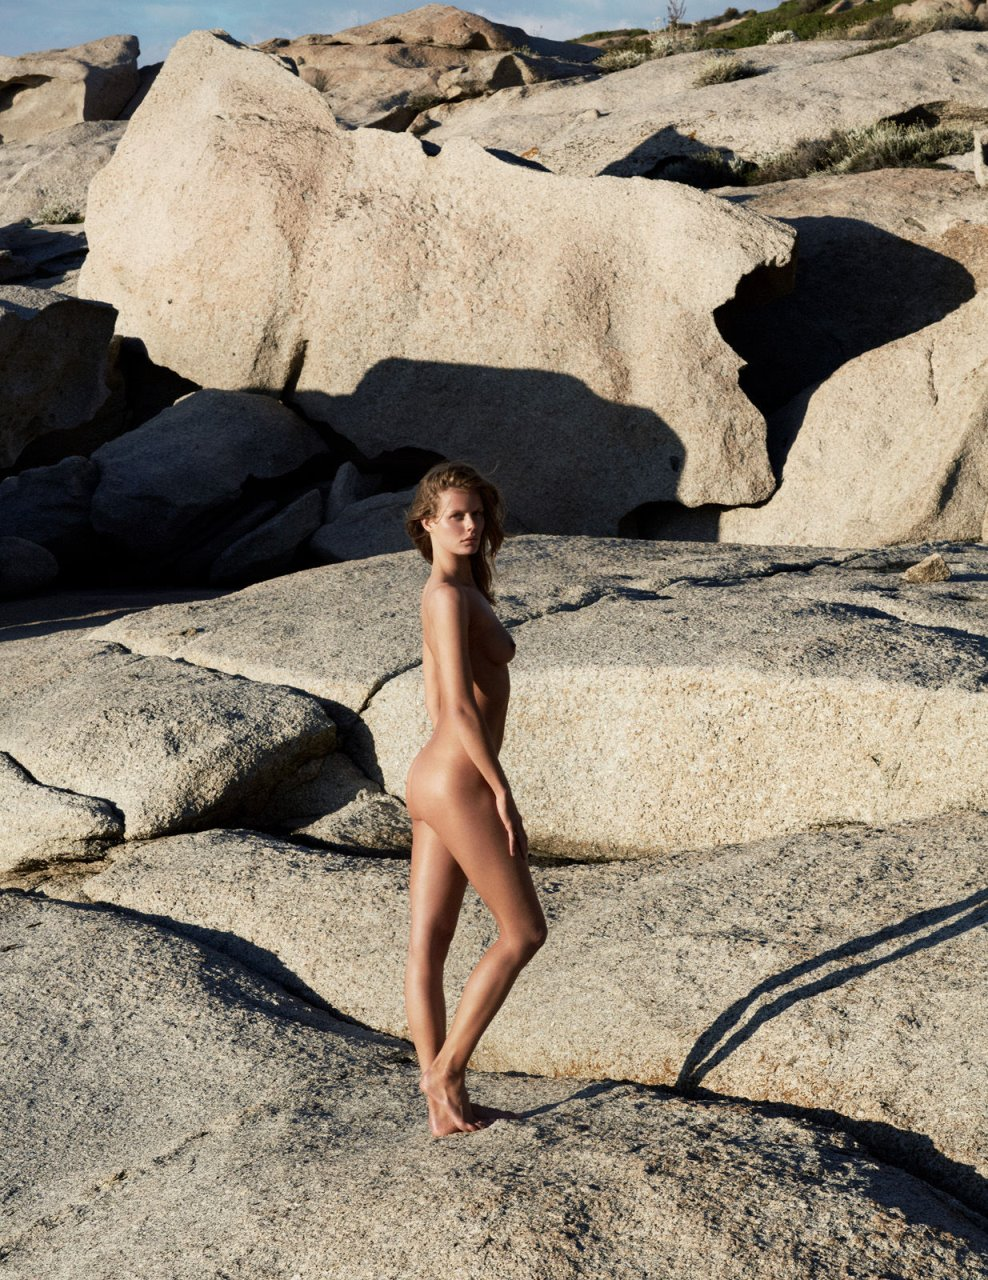 Marlijn hoek topless photos - 2019 year